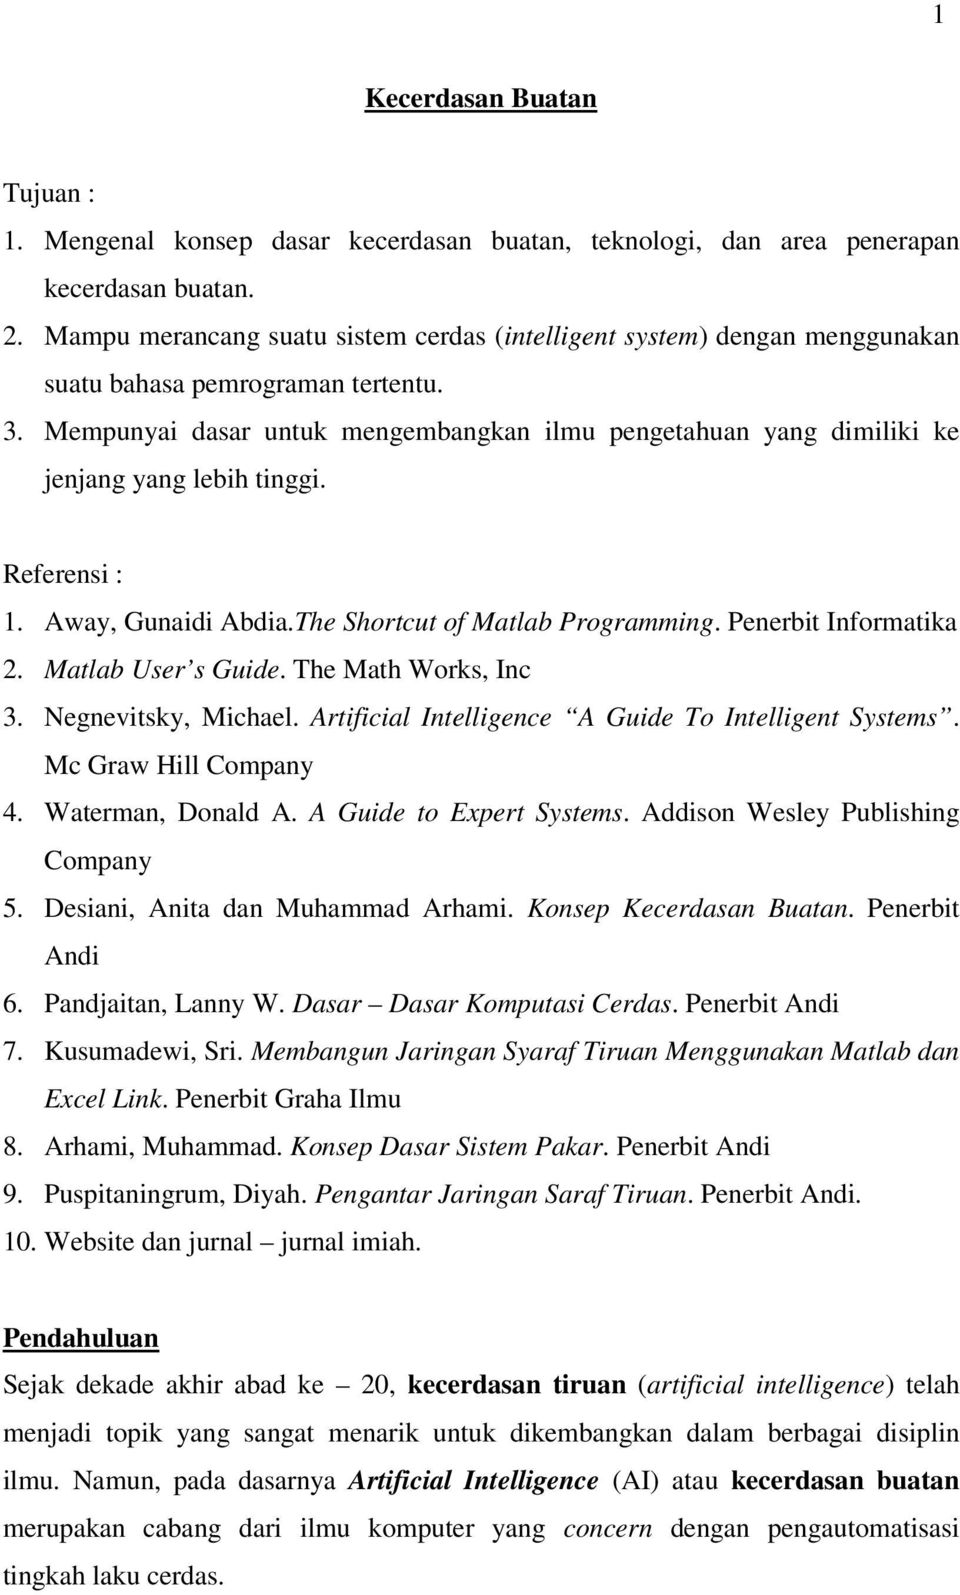 Mempunyai dasar untuk mengembangkan ilmu pengetahuan yang dimiliki ke jenjang yang lebih tinggi. Referensi : 1. Away, Gunaidi Abdia.The Shortcut of Matlab Programming. Penerbit Informatika 2.